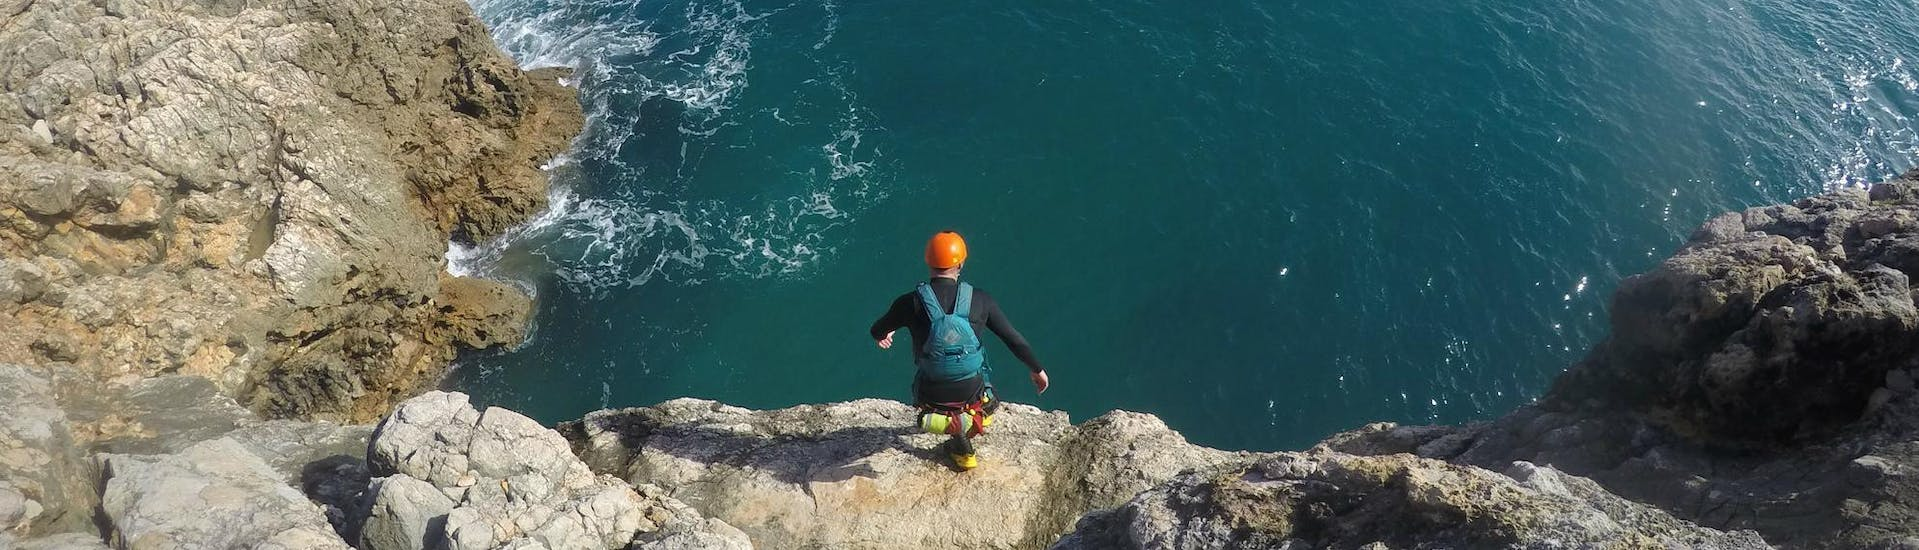 "A participant of the Coasteering ""Adventure"" Tour in Sagres is getting ready to jump off from a high cliff on the side of an experienced guide from Poseidon Adventure"